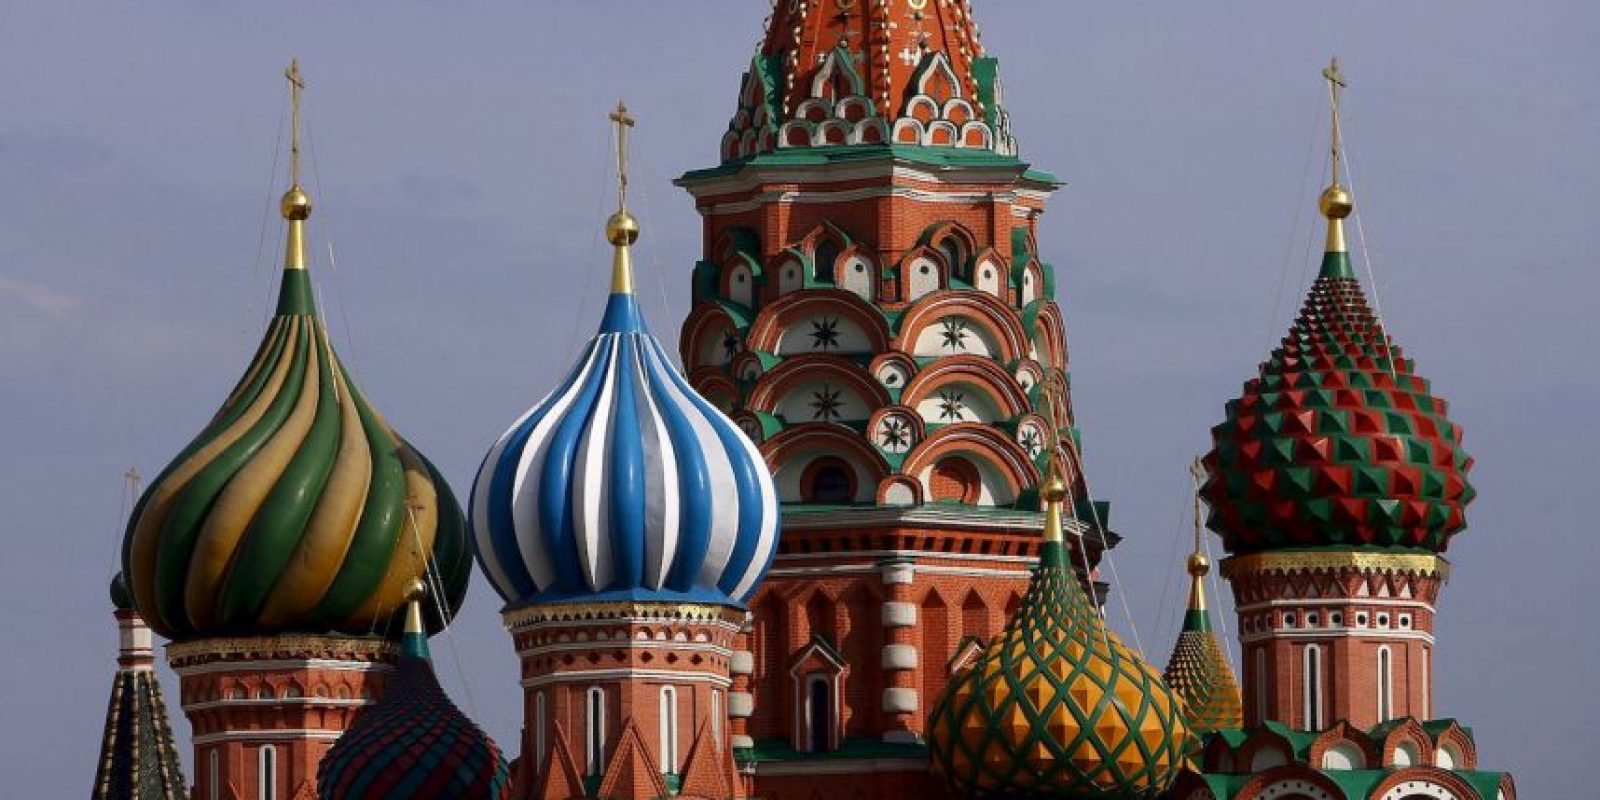 Rusia (40%) Foto: Getty Images